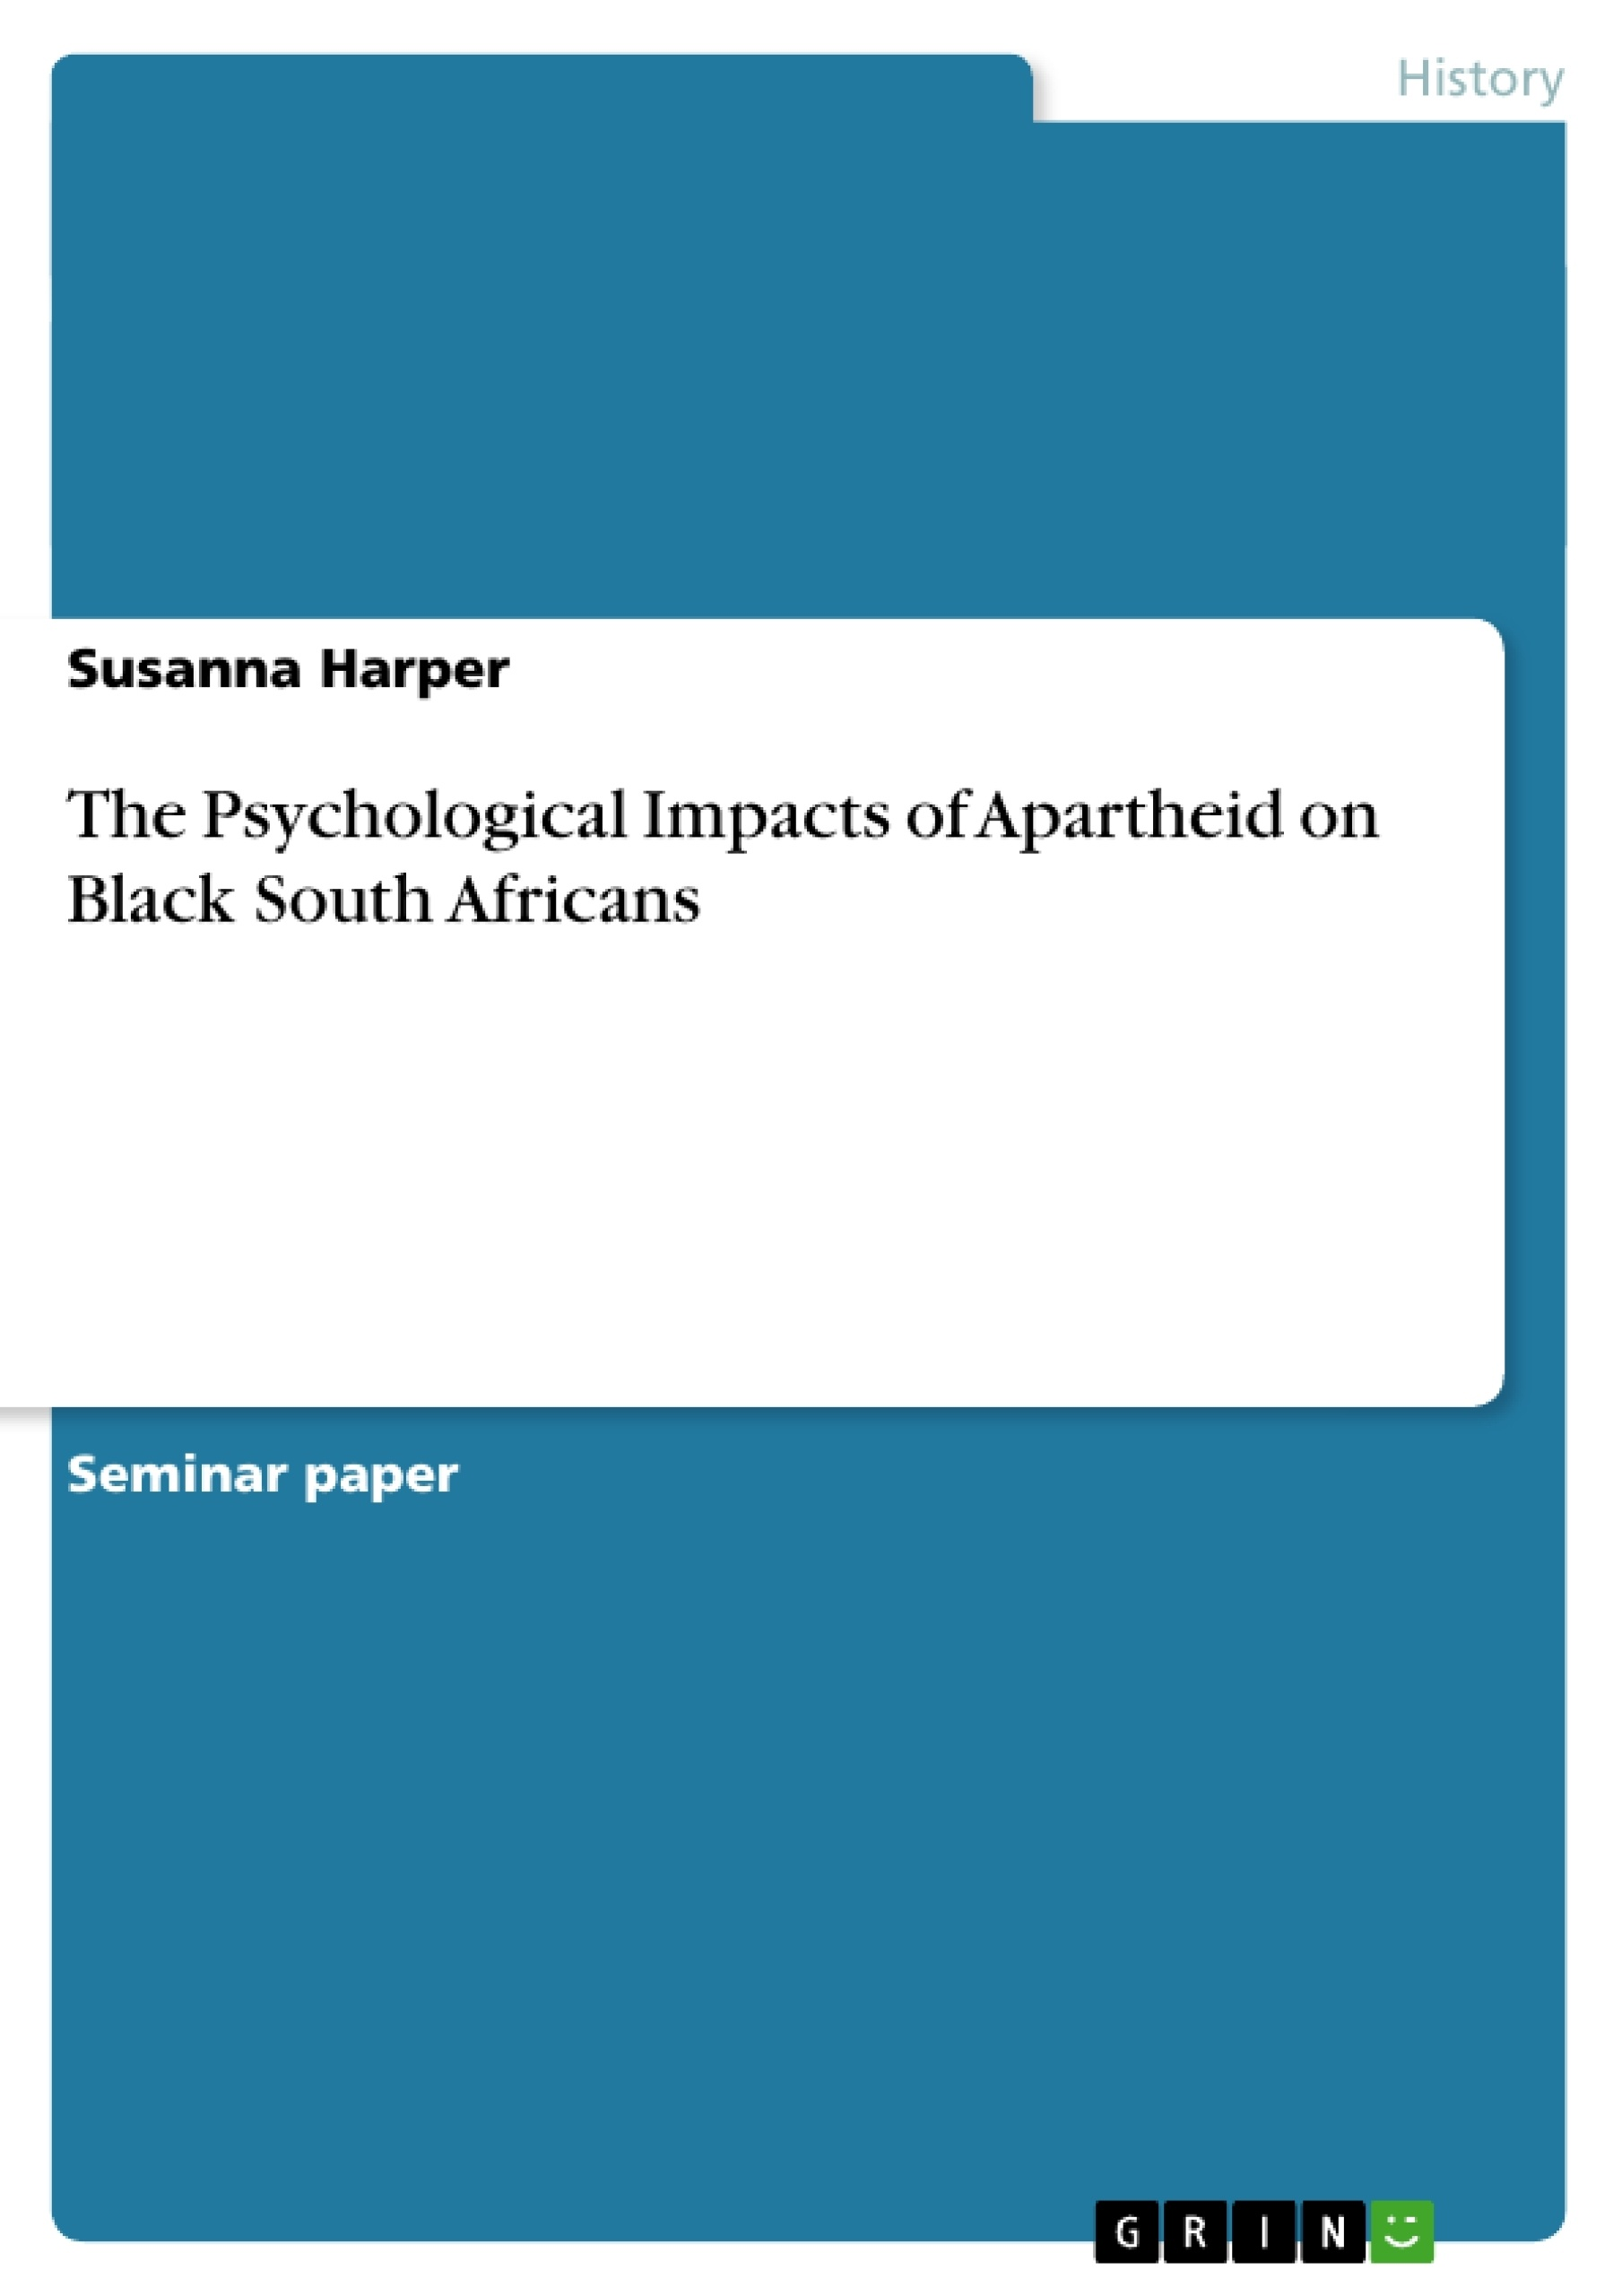 the psychological impacts of apartheid on black south africans  the psychological impacts of apartheid on black south africans publish your master s thesis bachelor s thesis essay or term paper